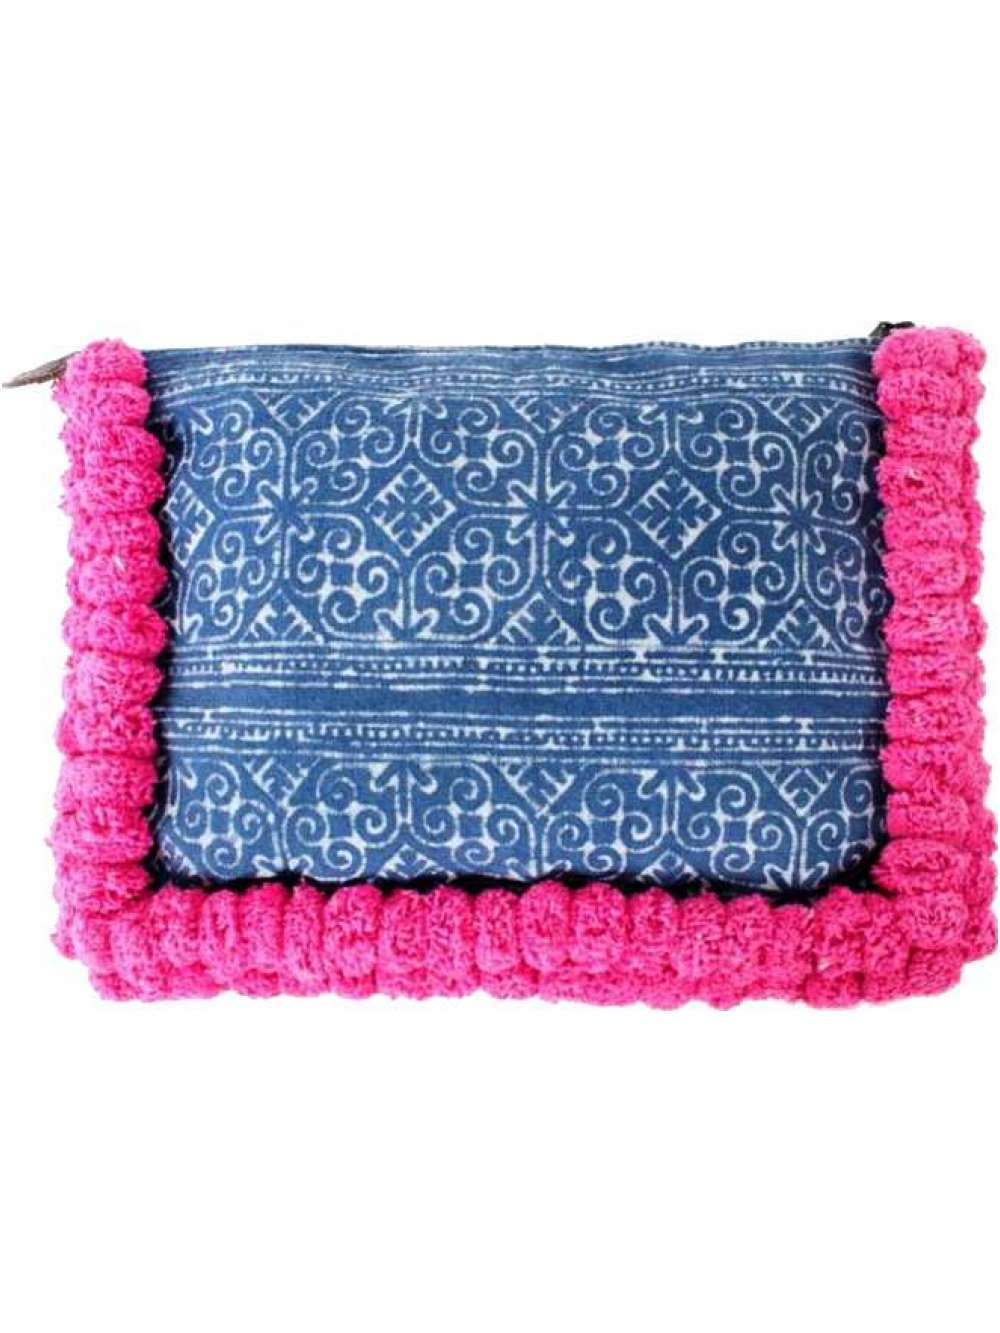 Batik Oversized Clutch with Pink Pom poms